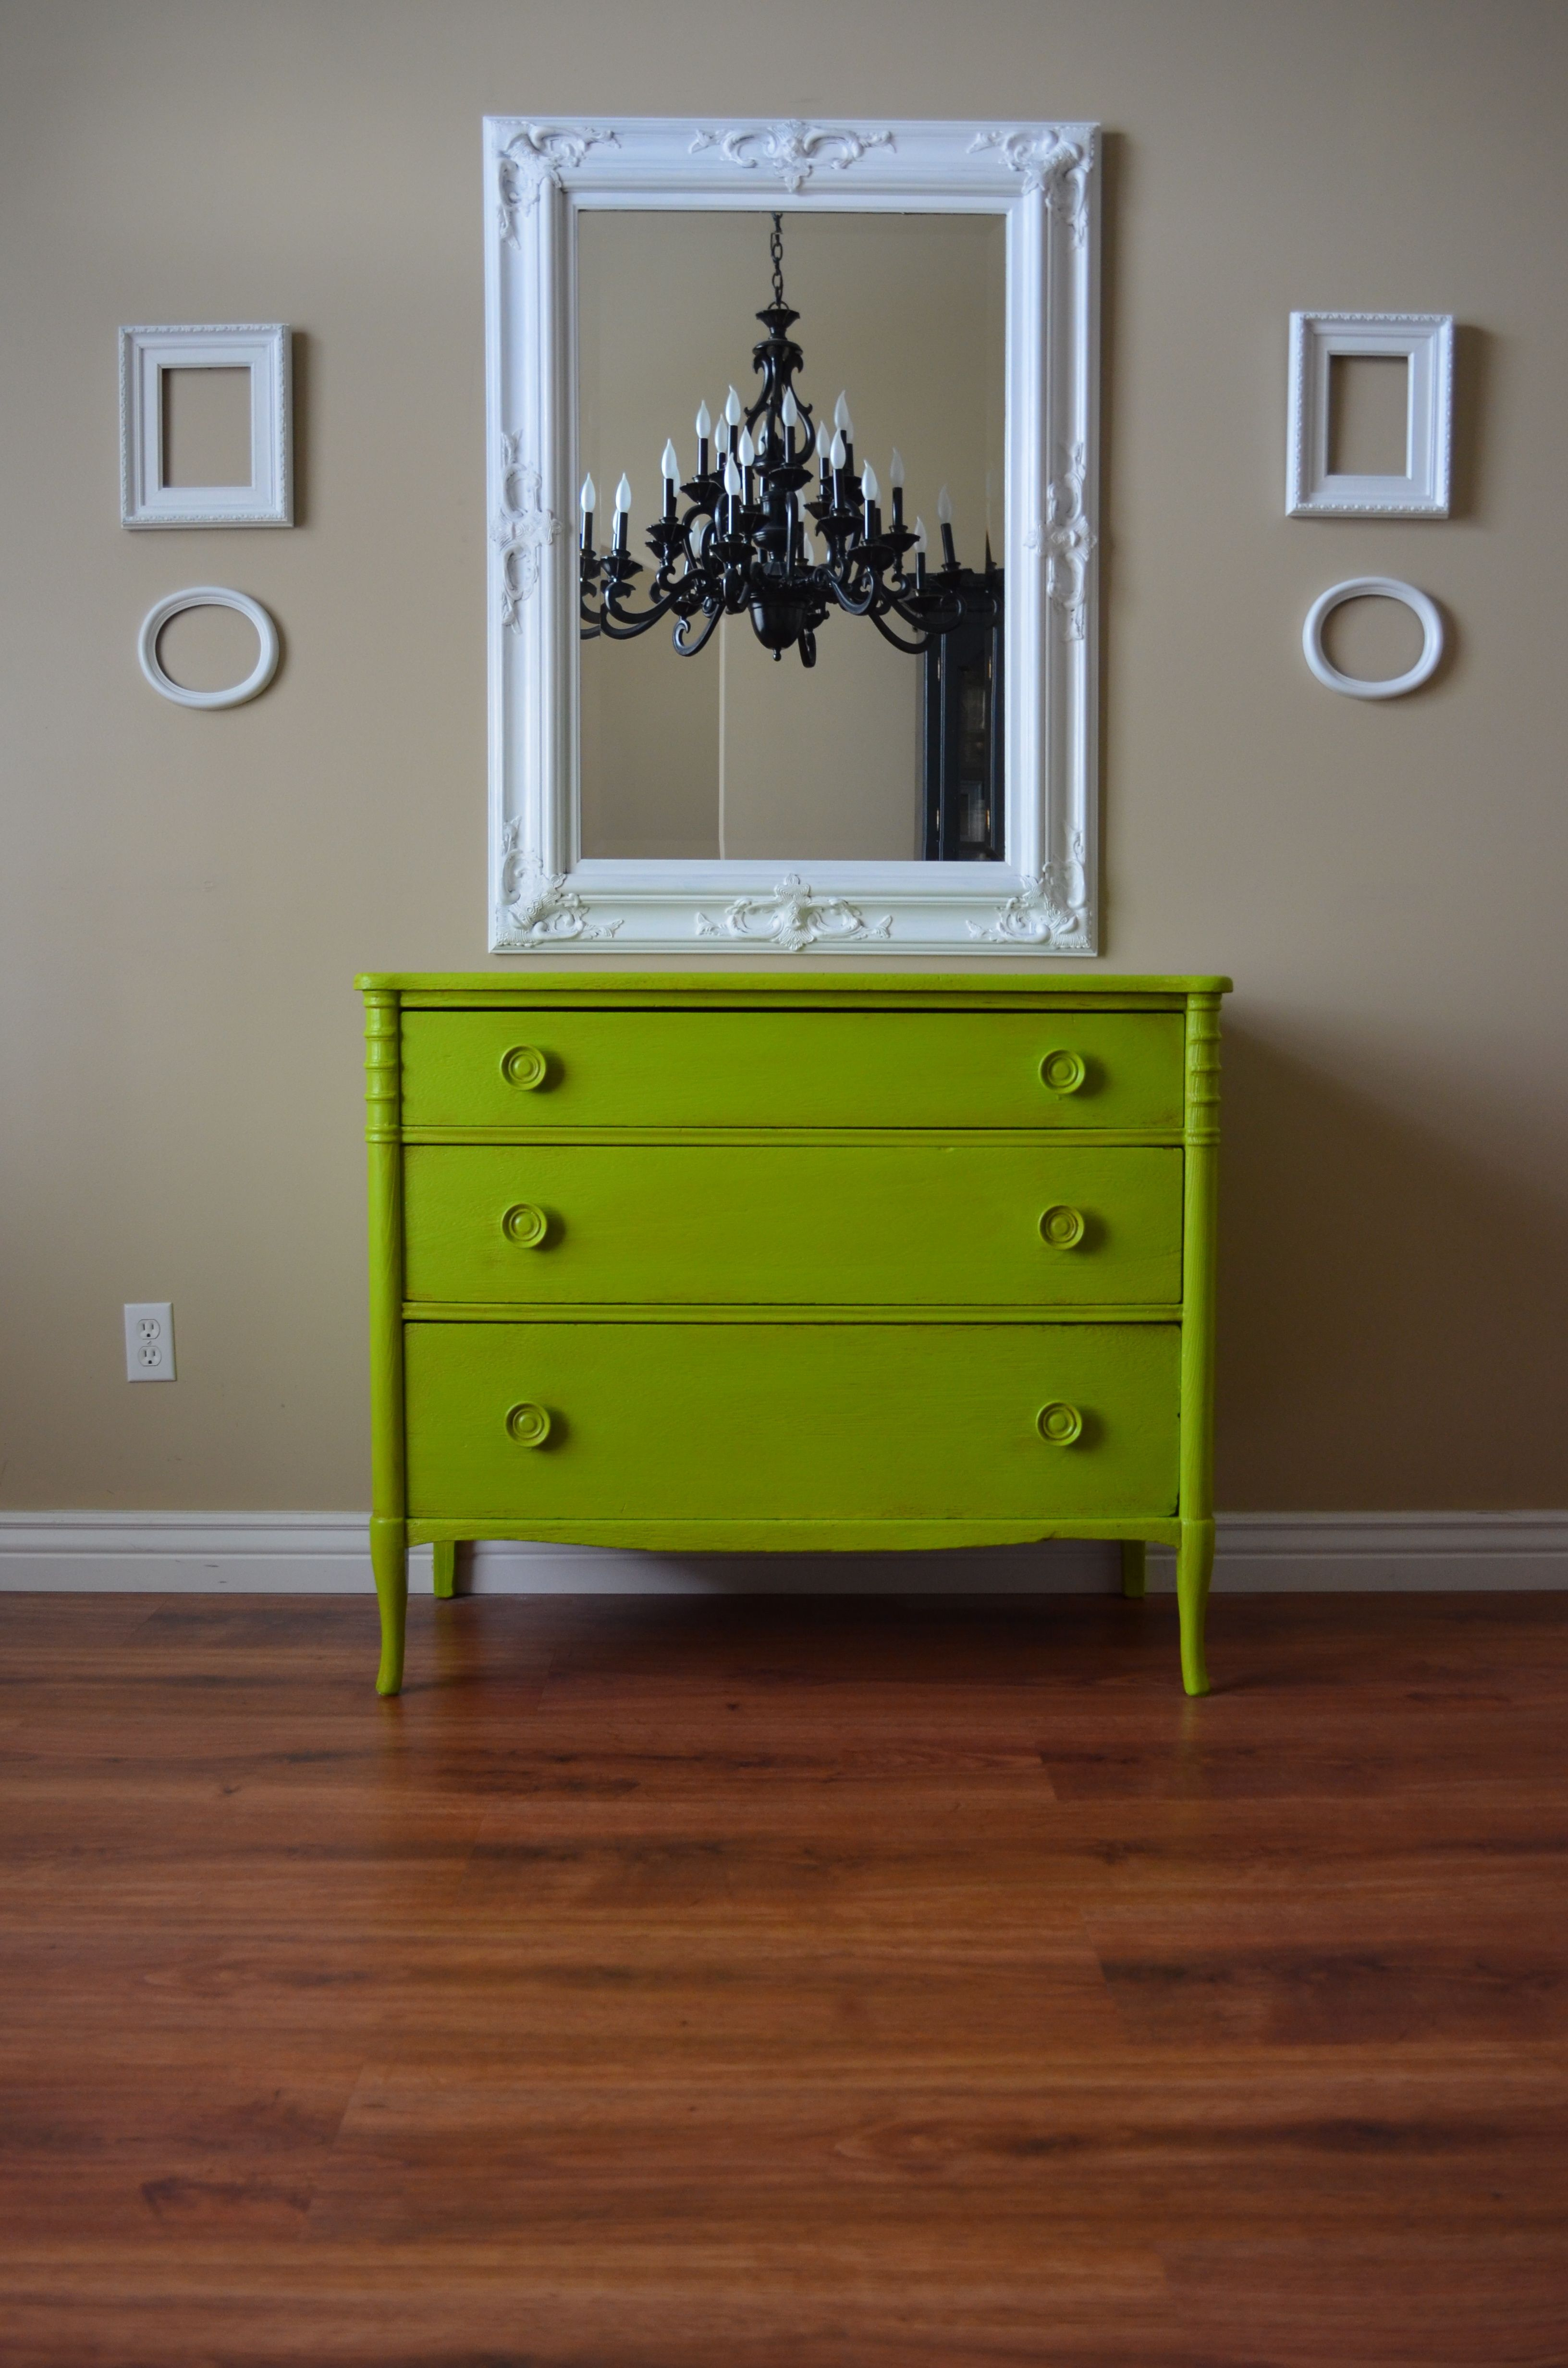 Best Lime Apple Chartreuse Green Dresser For Her Dining Room On Neutral Wall With White Frames 400 x 300